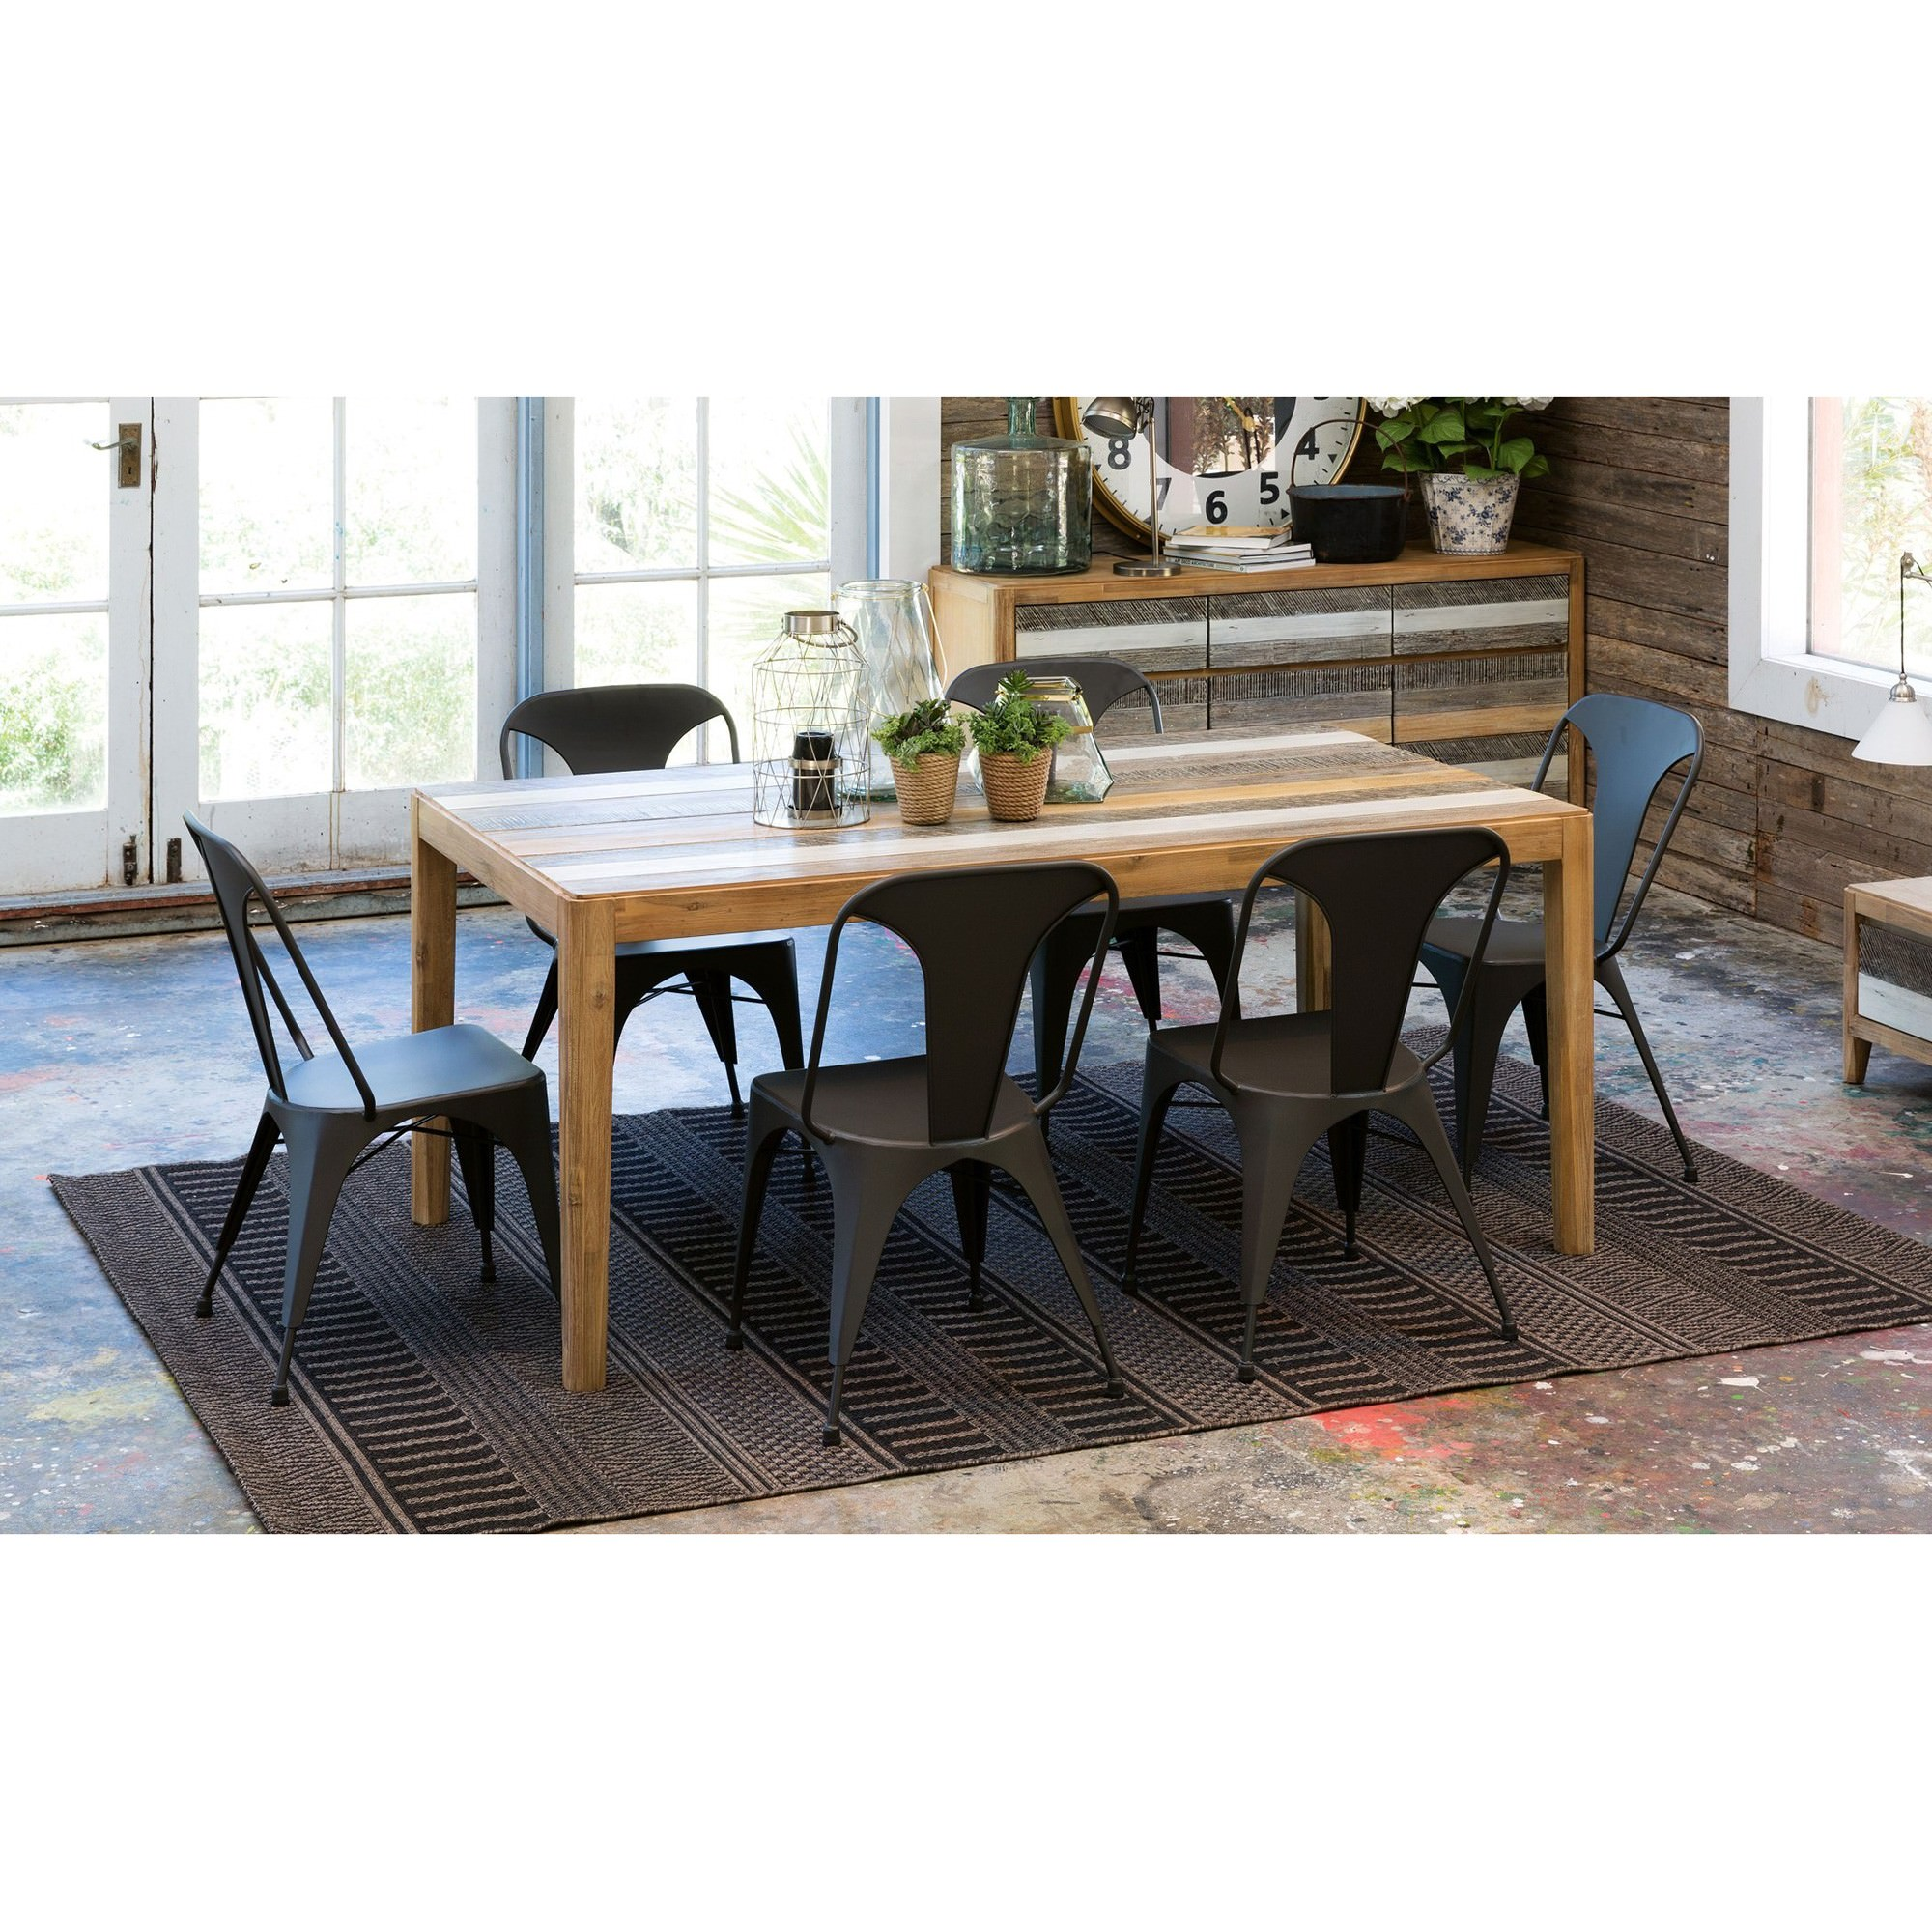 Hobson 7 Piece Acacia Timber Dining Table Set with Metal Chairs, 180cm